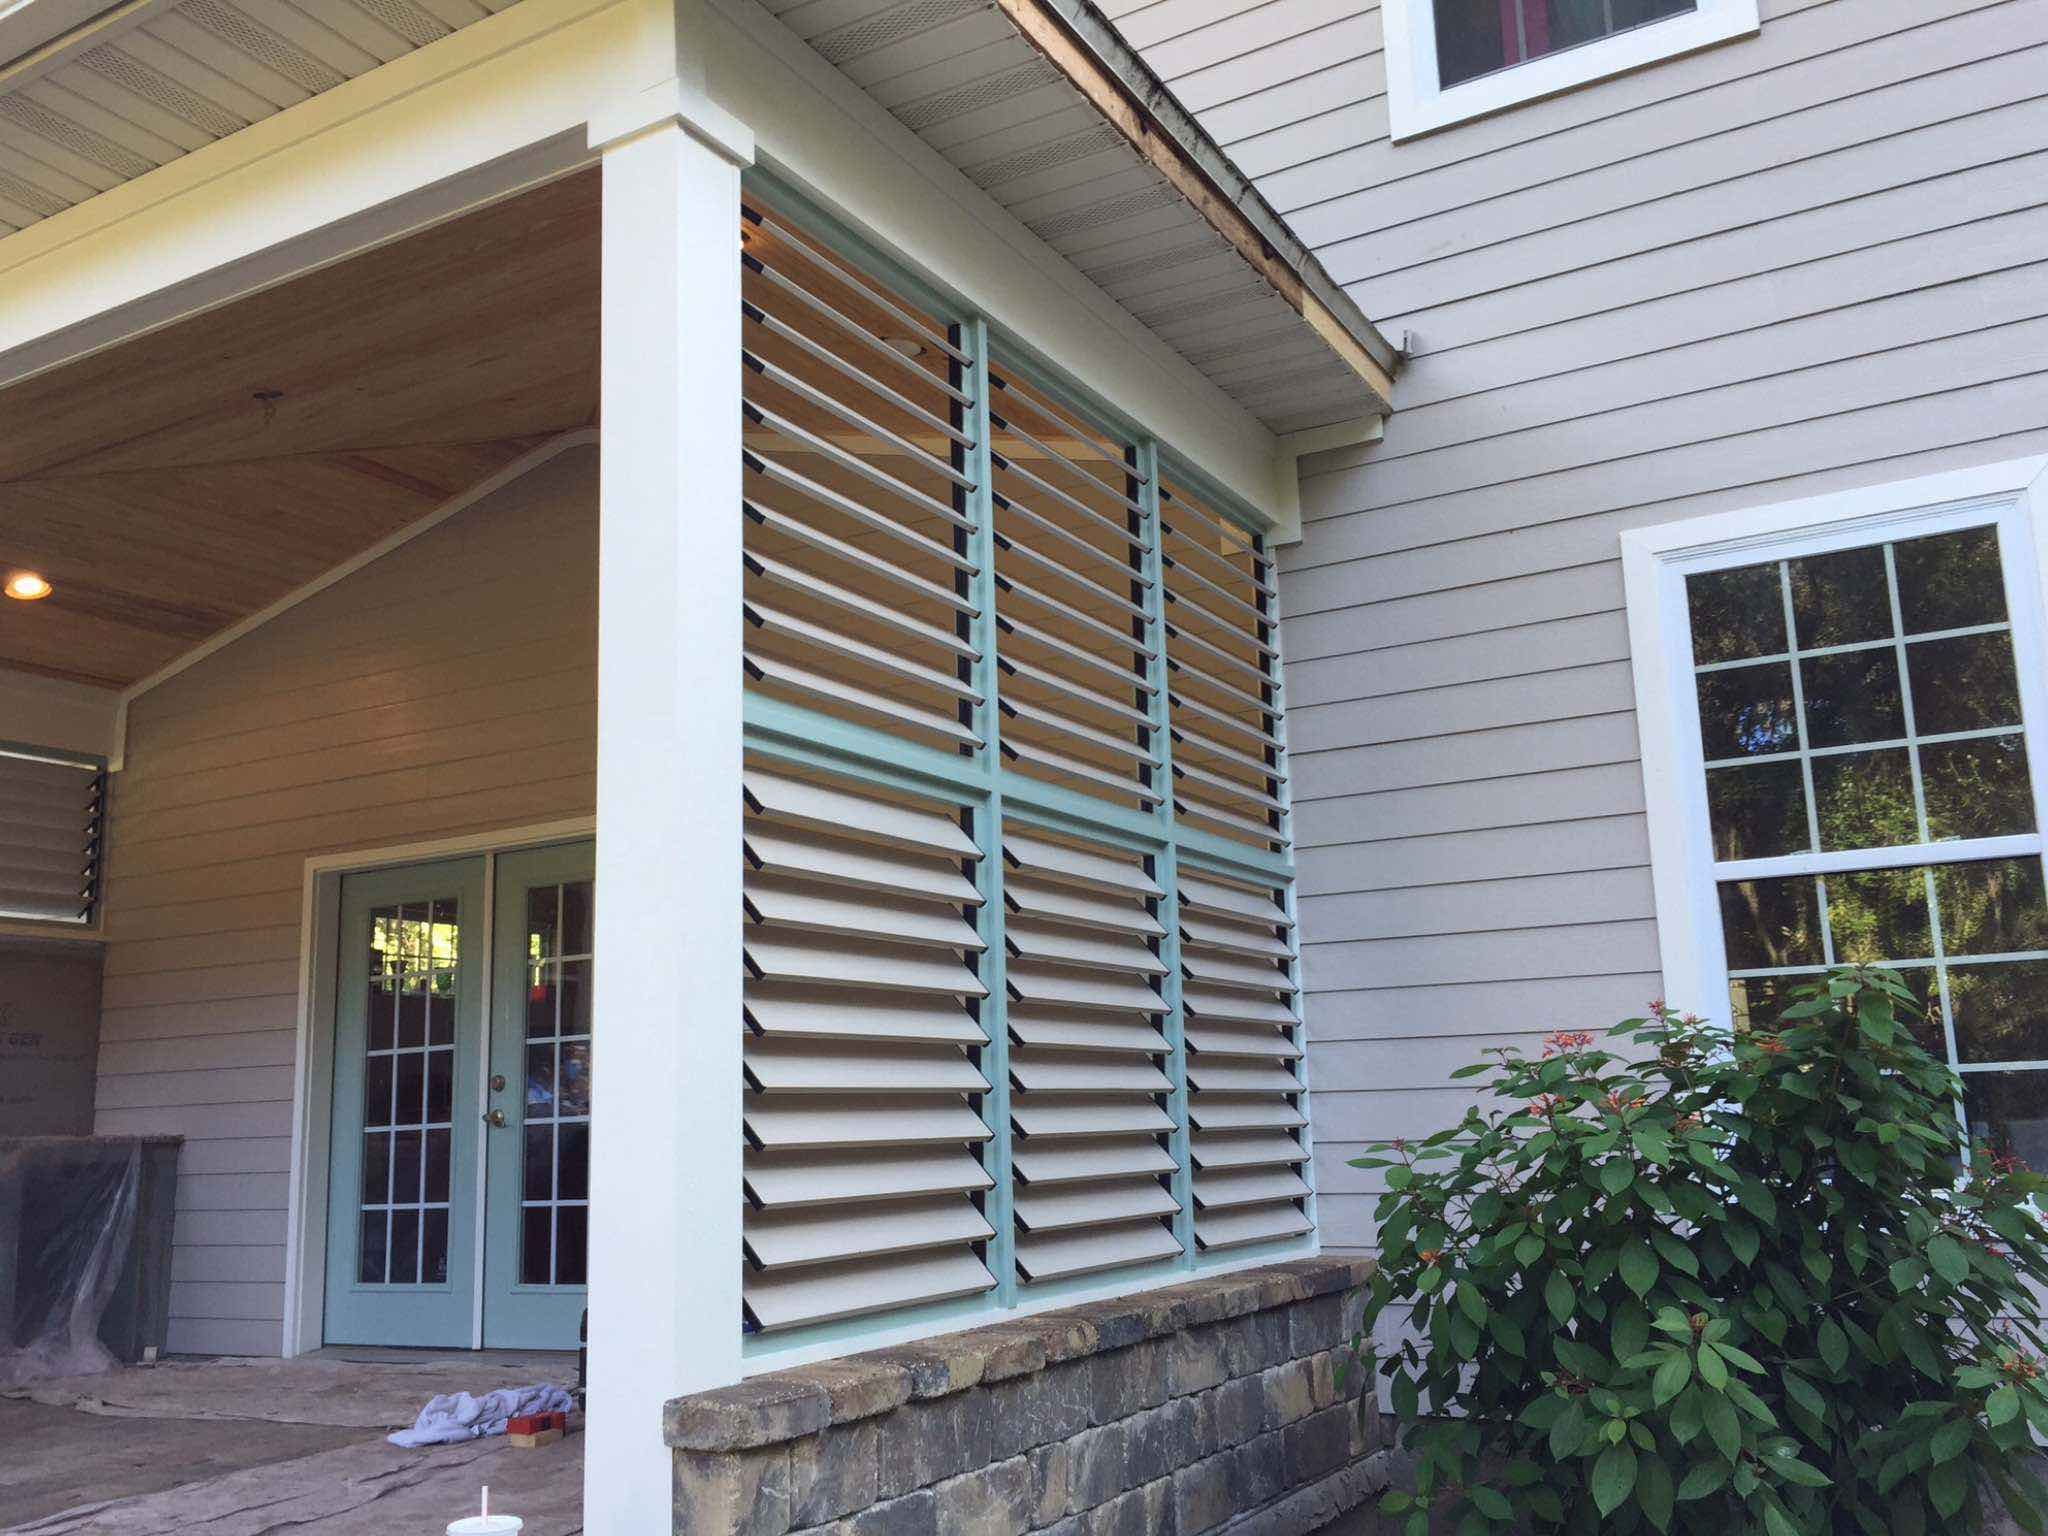 Louvered Outdoor BBQ Patio Enclosure2 home Pinterest